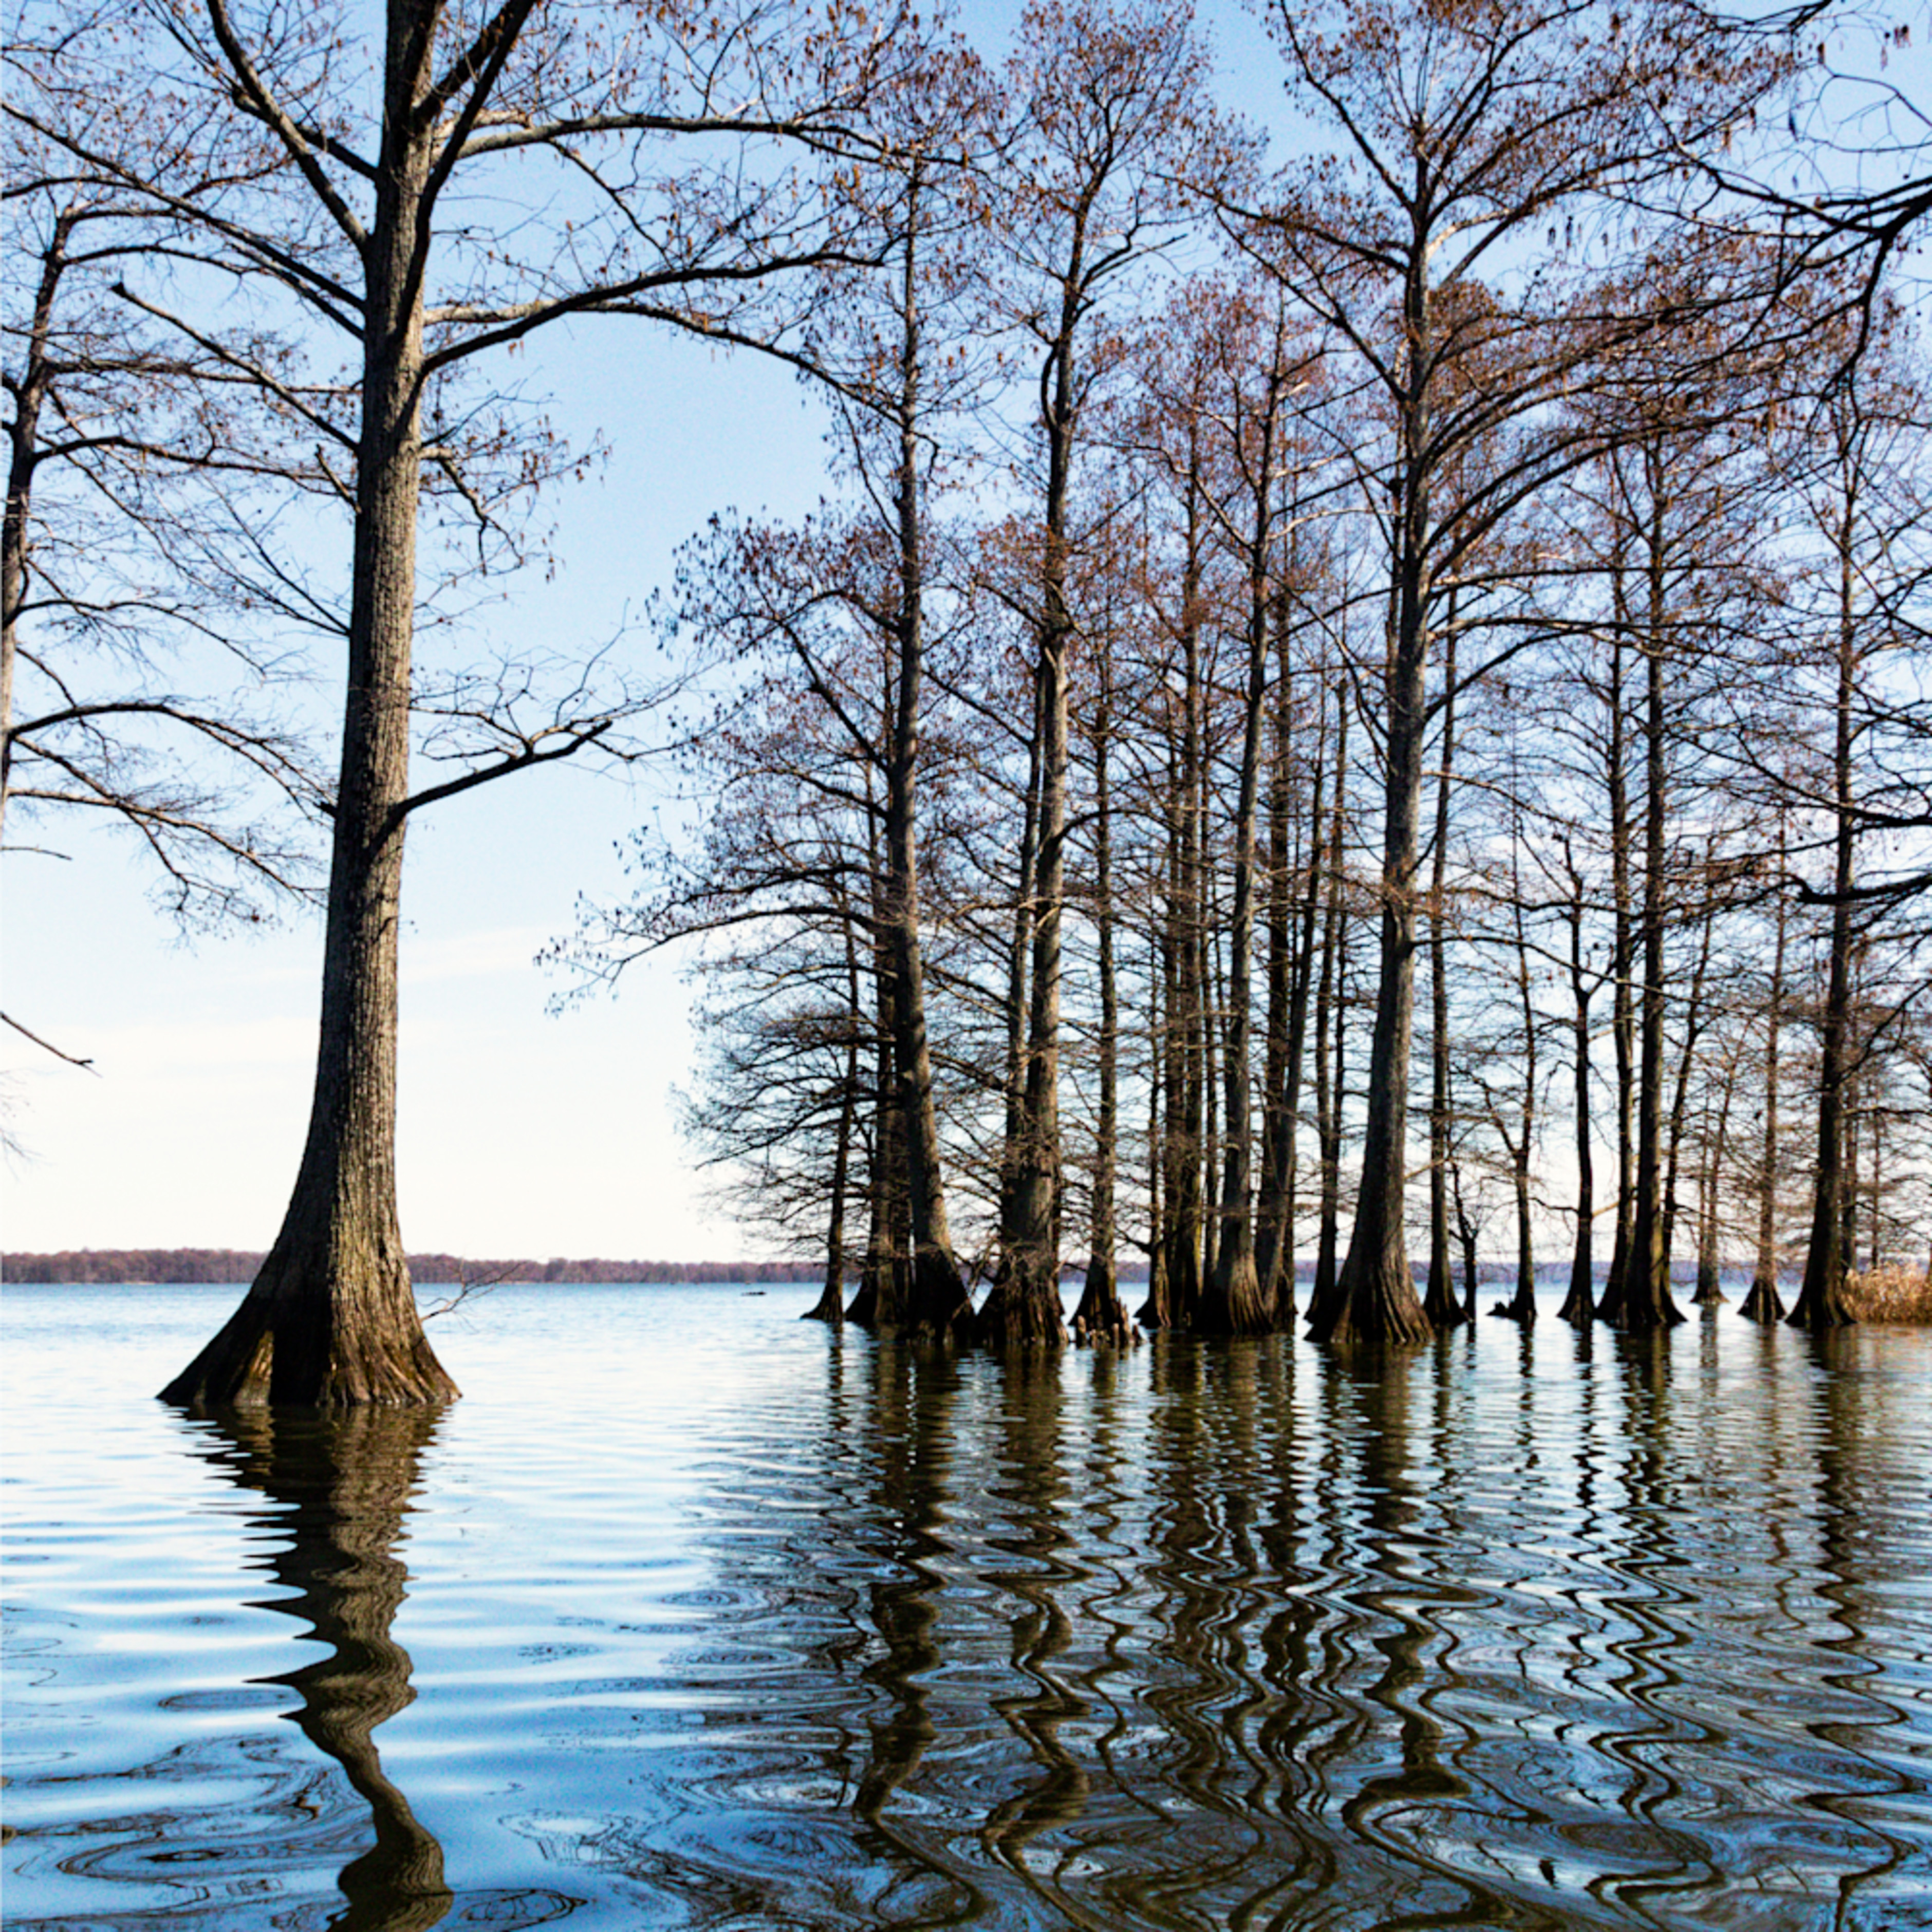 Cypress trees reflection  mg 5516fs healthcare art xpeskn